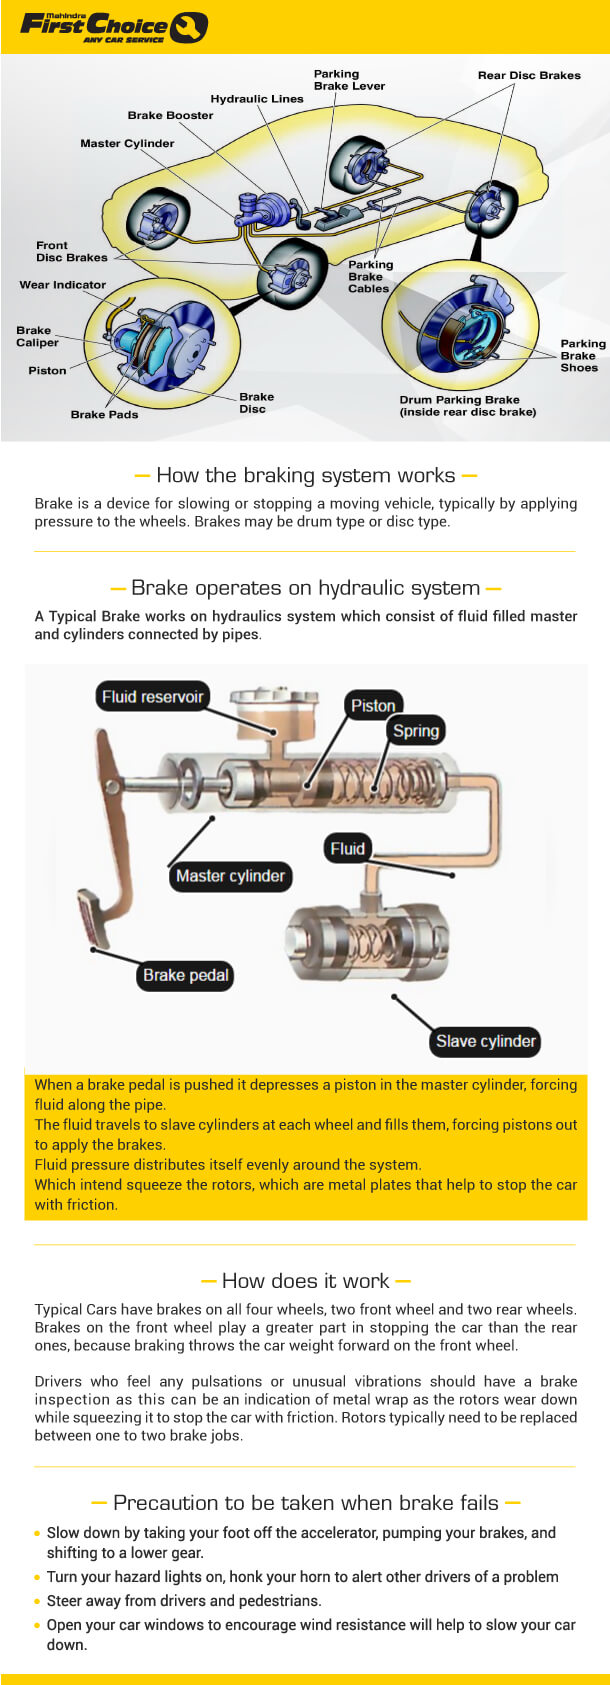 How Breaking System Work - MFCServices